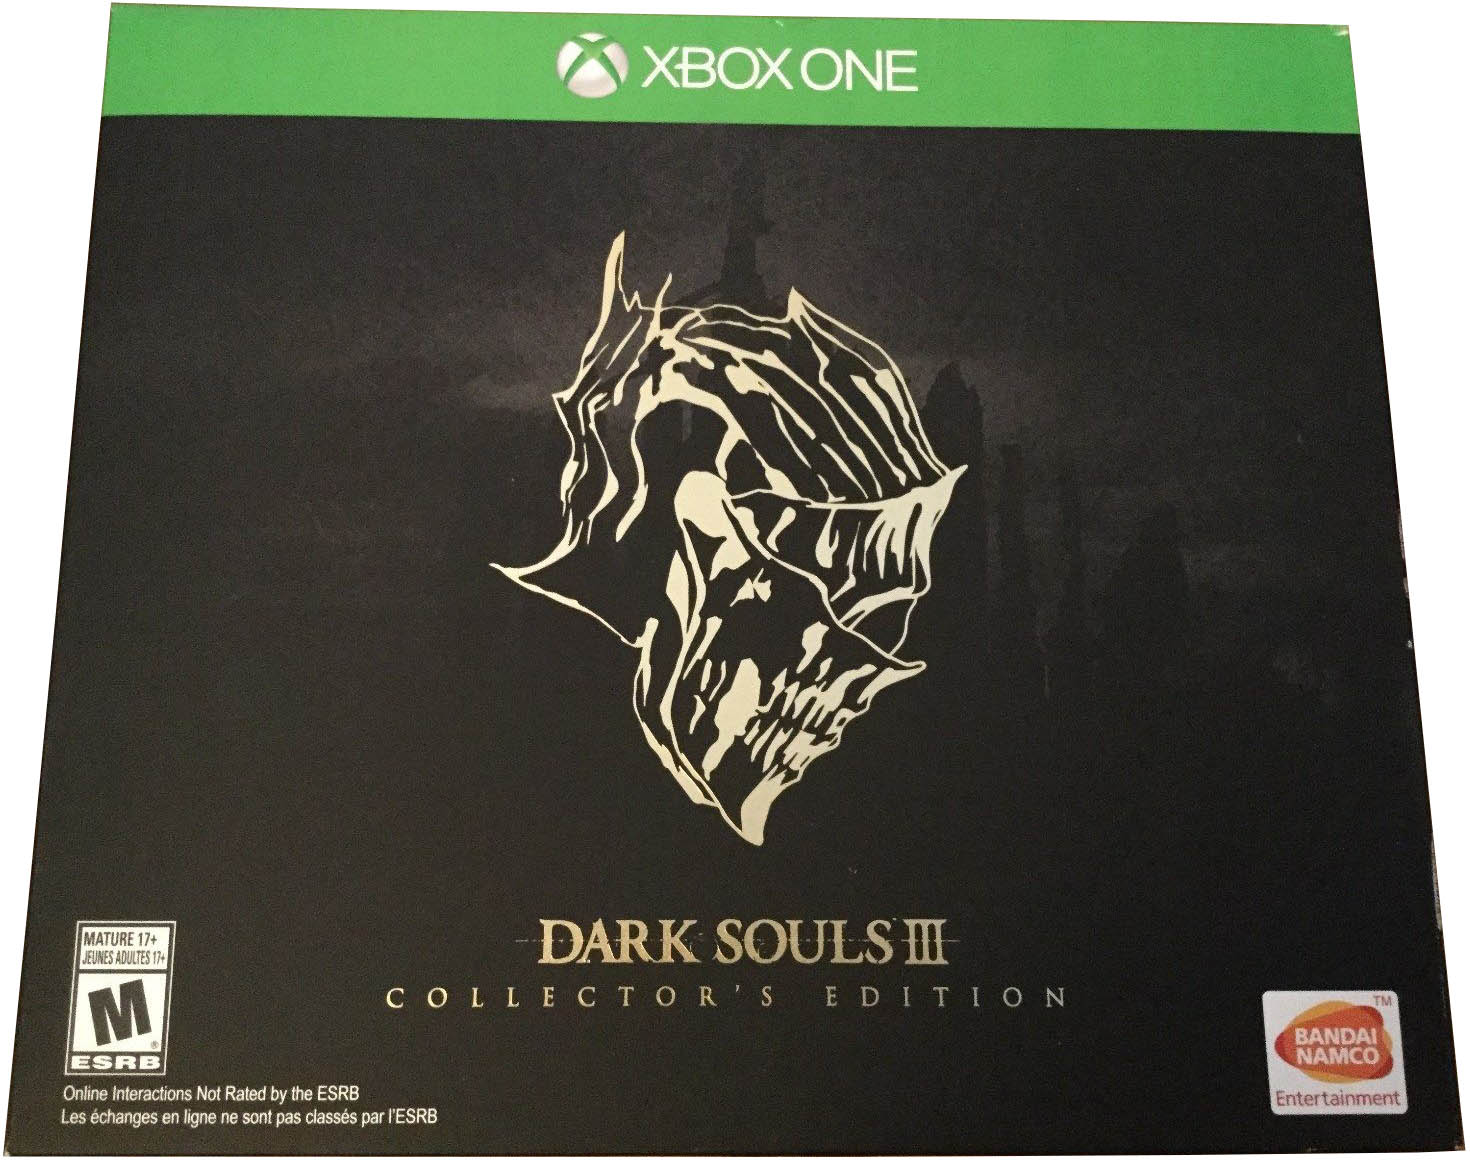 Dark Souls III (Collector's Edition) Xbox One издание в Америке